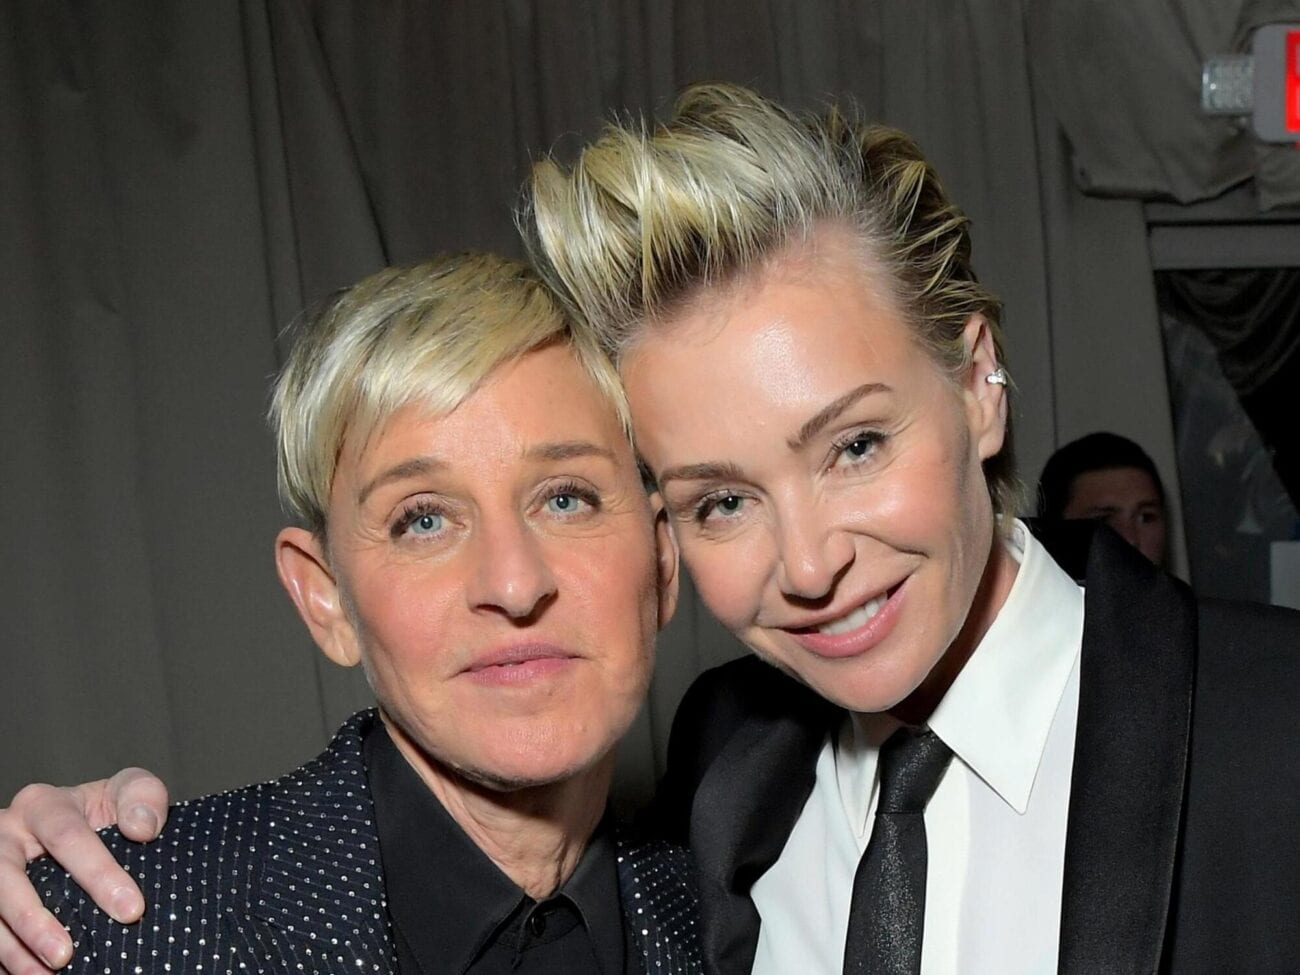 Ellen DeGeneres's wife, Portia de Rossi, took to Instagram today in order to show support to her wife. Here's what we know about the campaign.